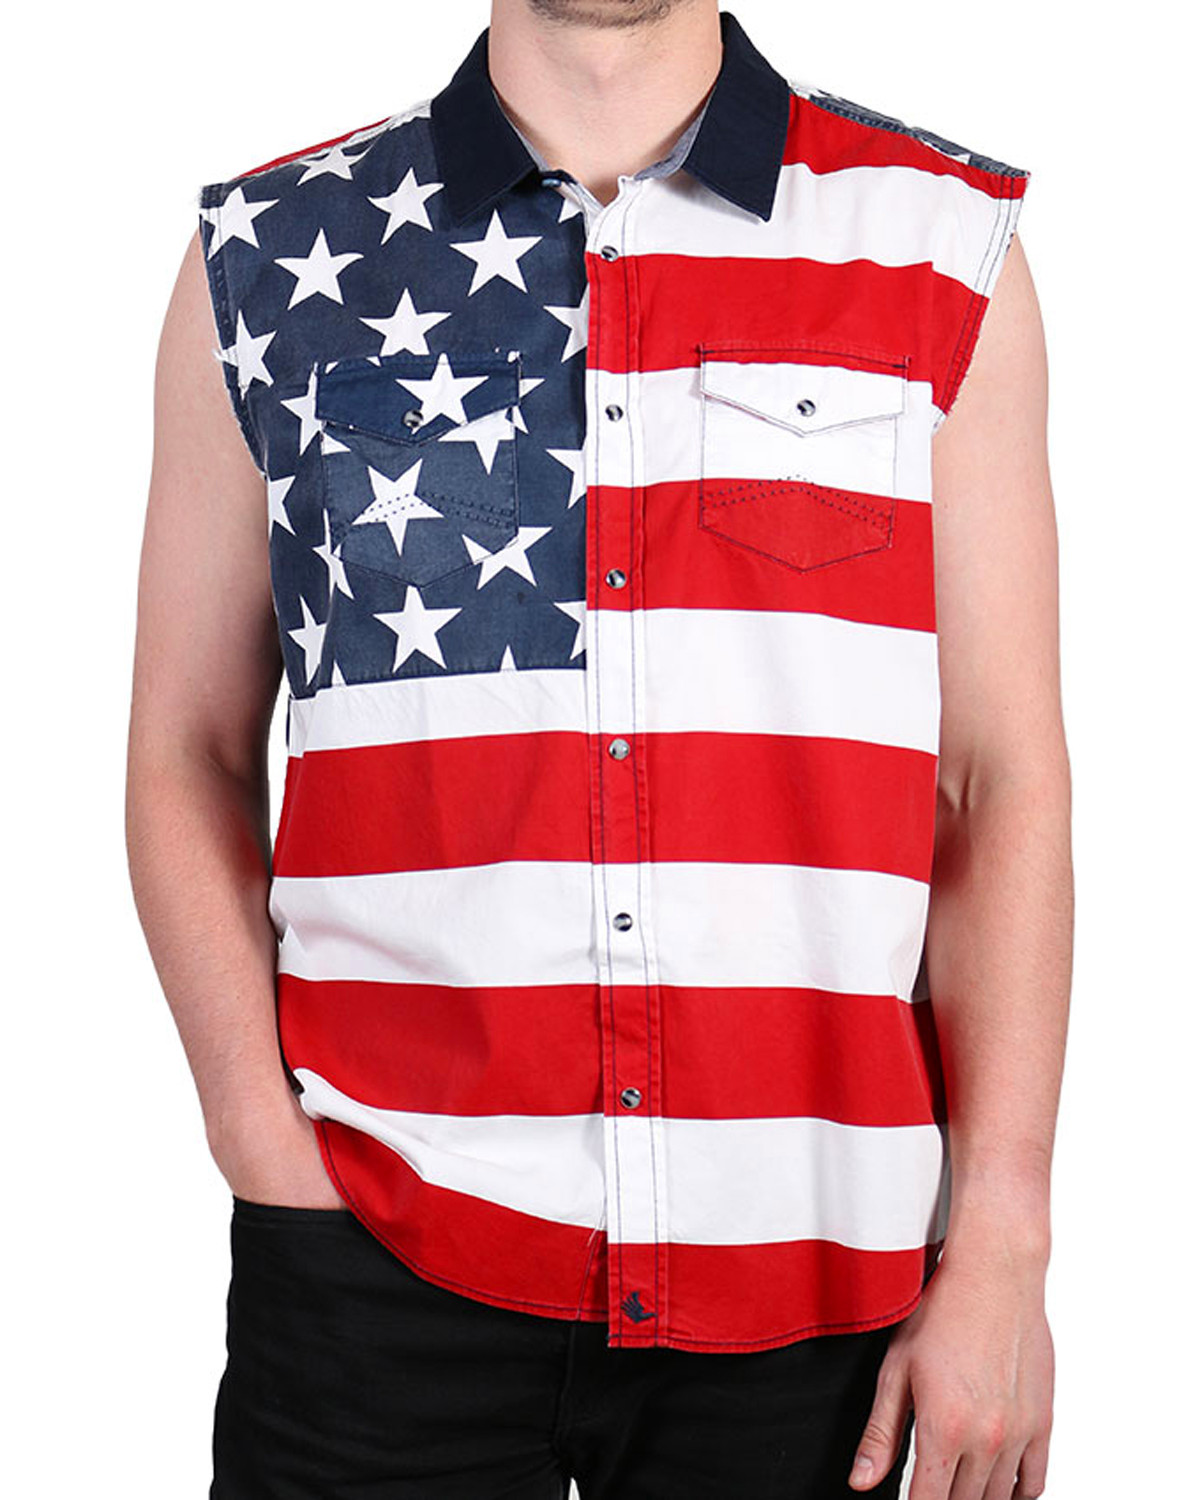 c9d1f288b53f80 Cody James Men s American Flag Sleeveless Shirt